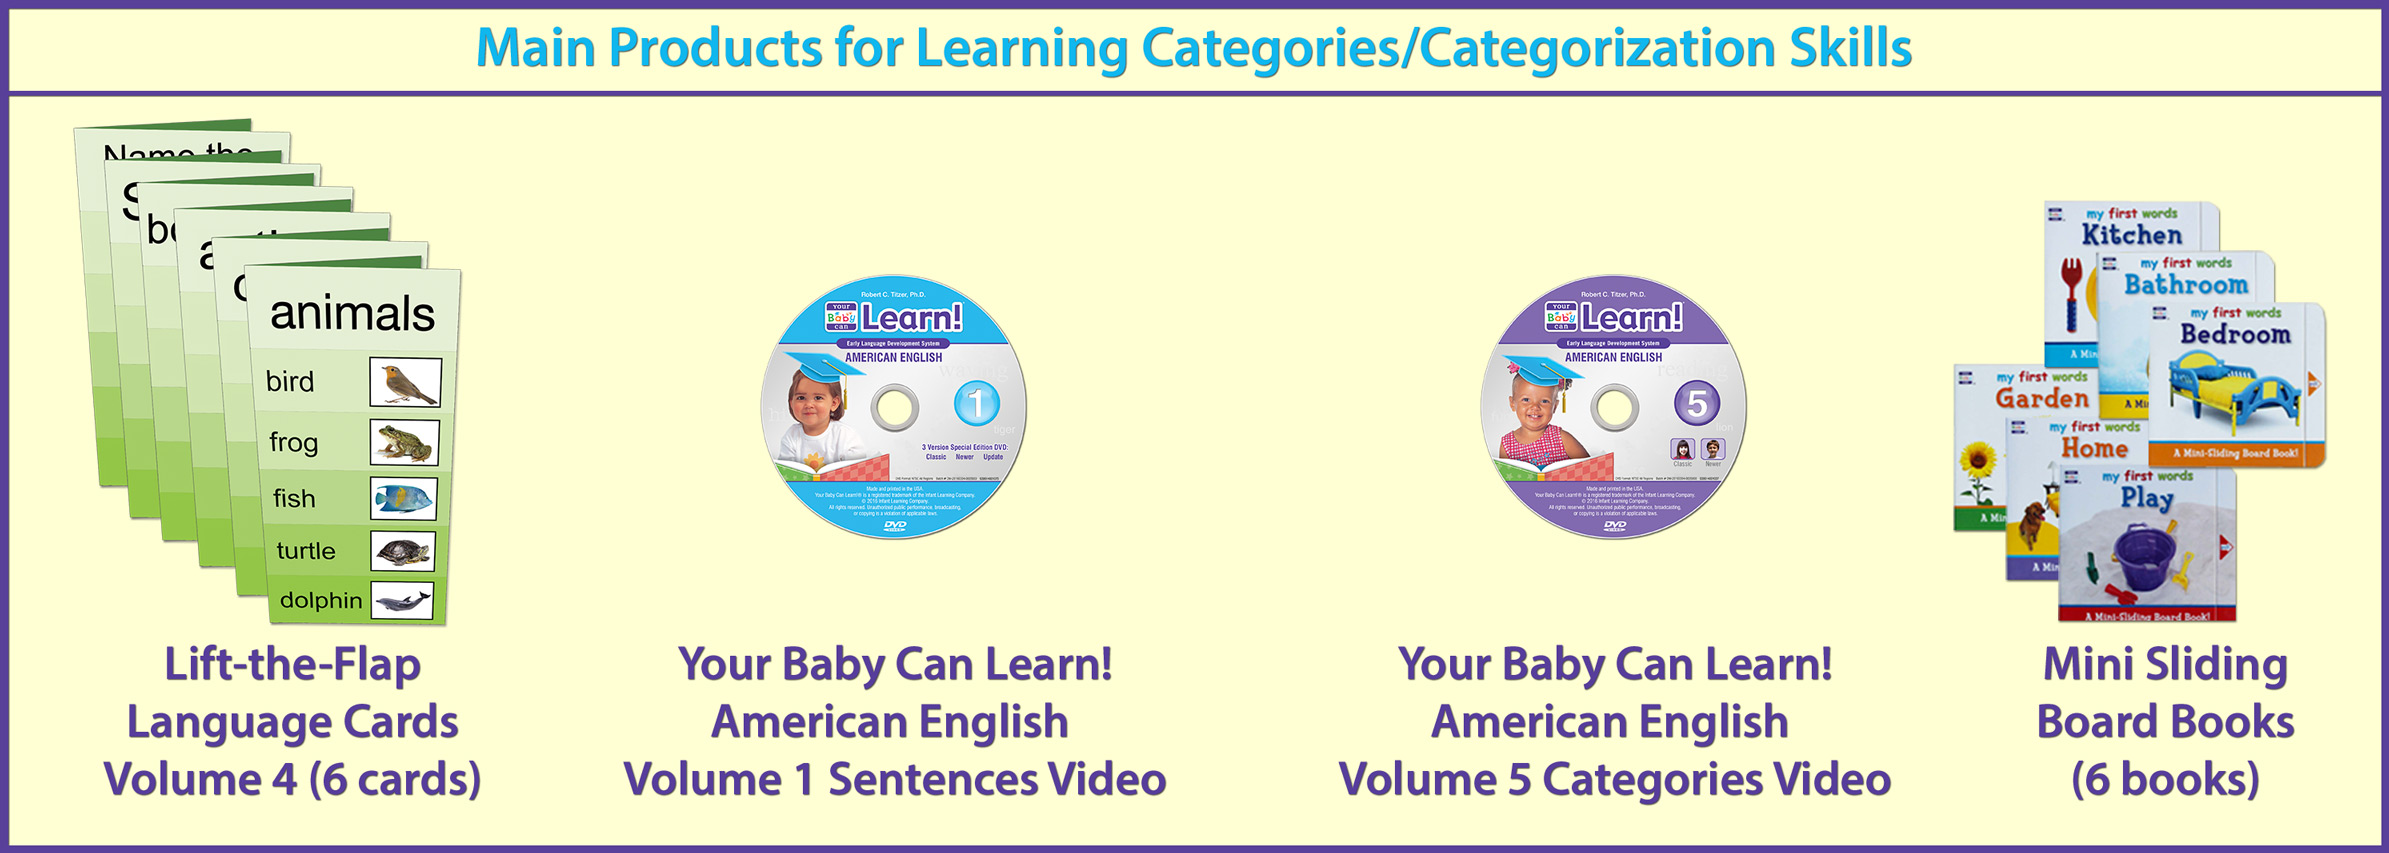 Main Products for Learning Categories